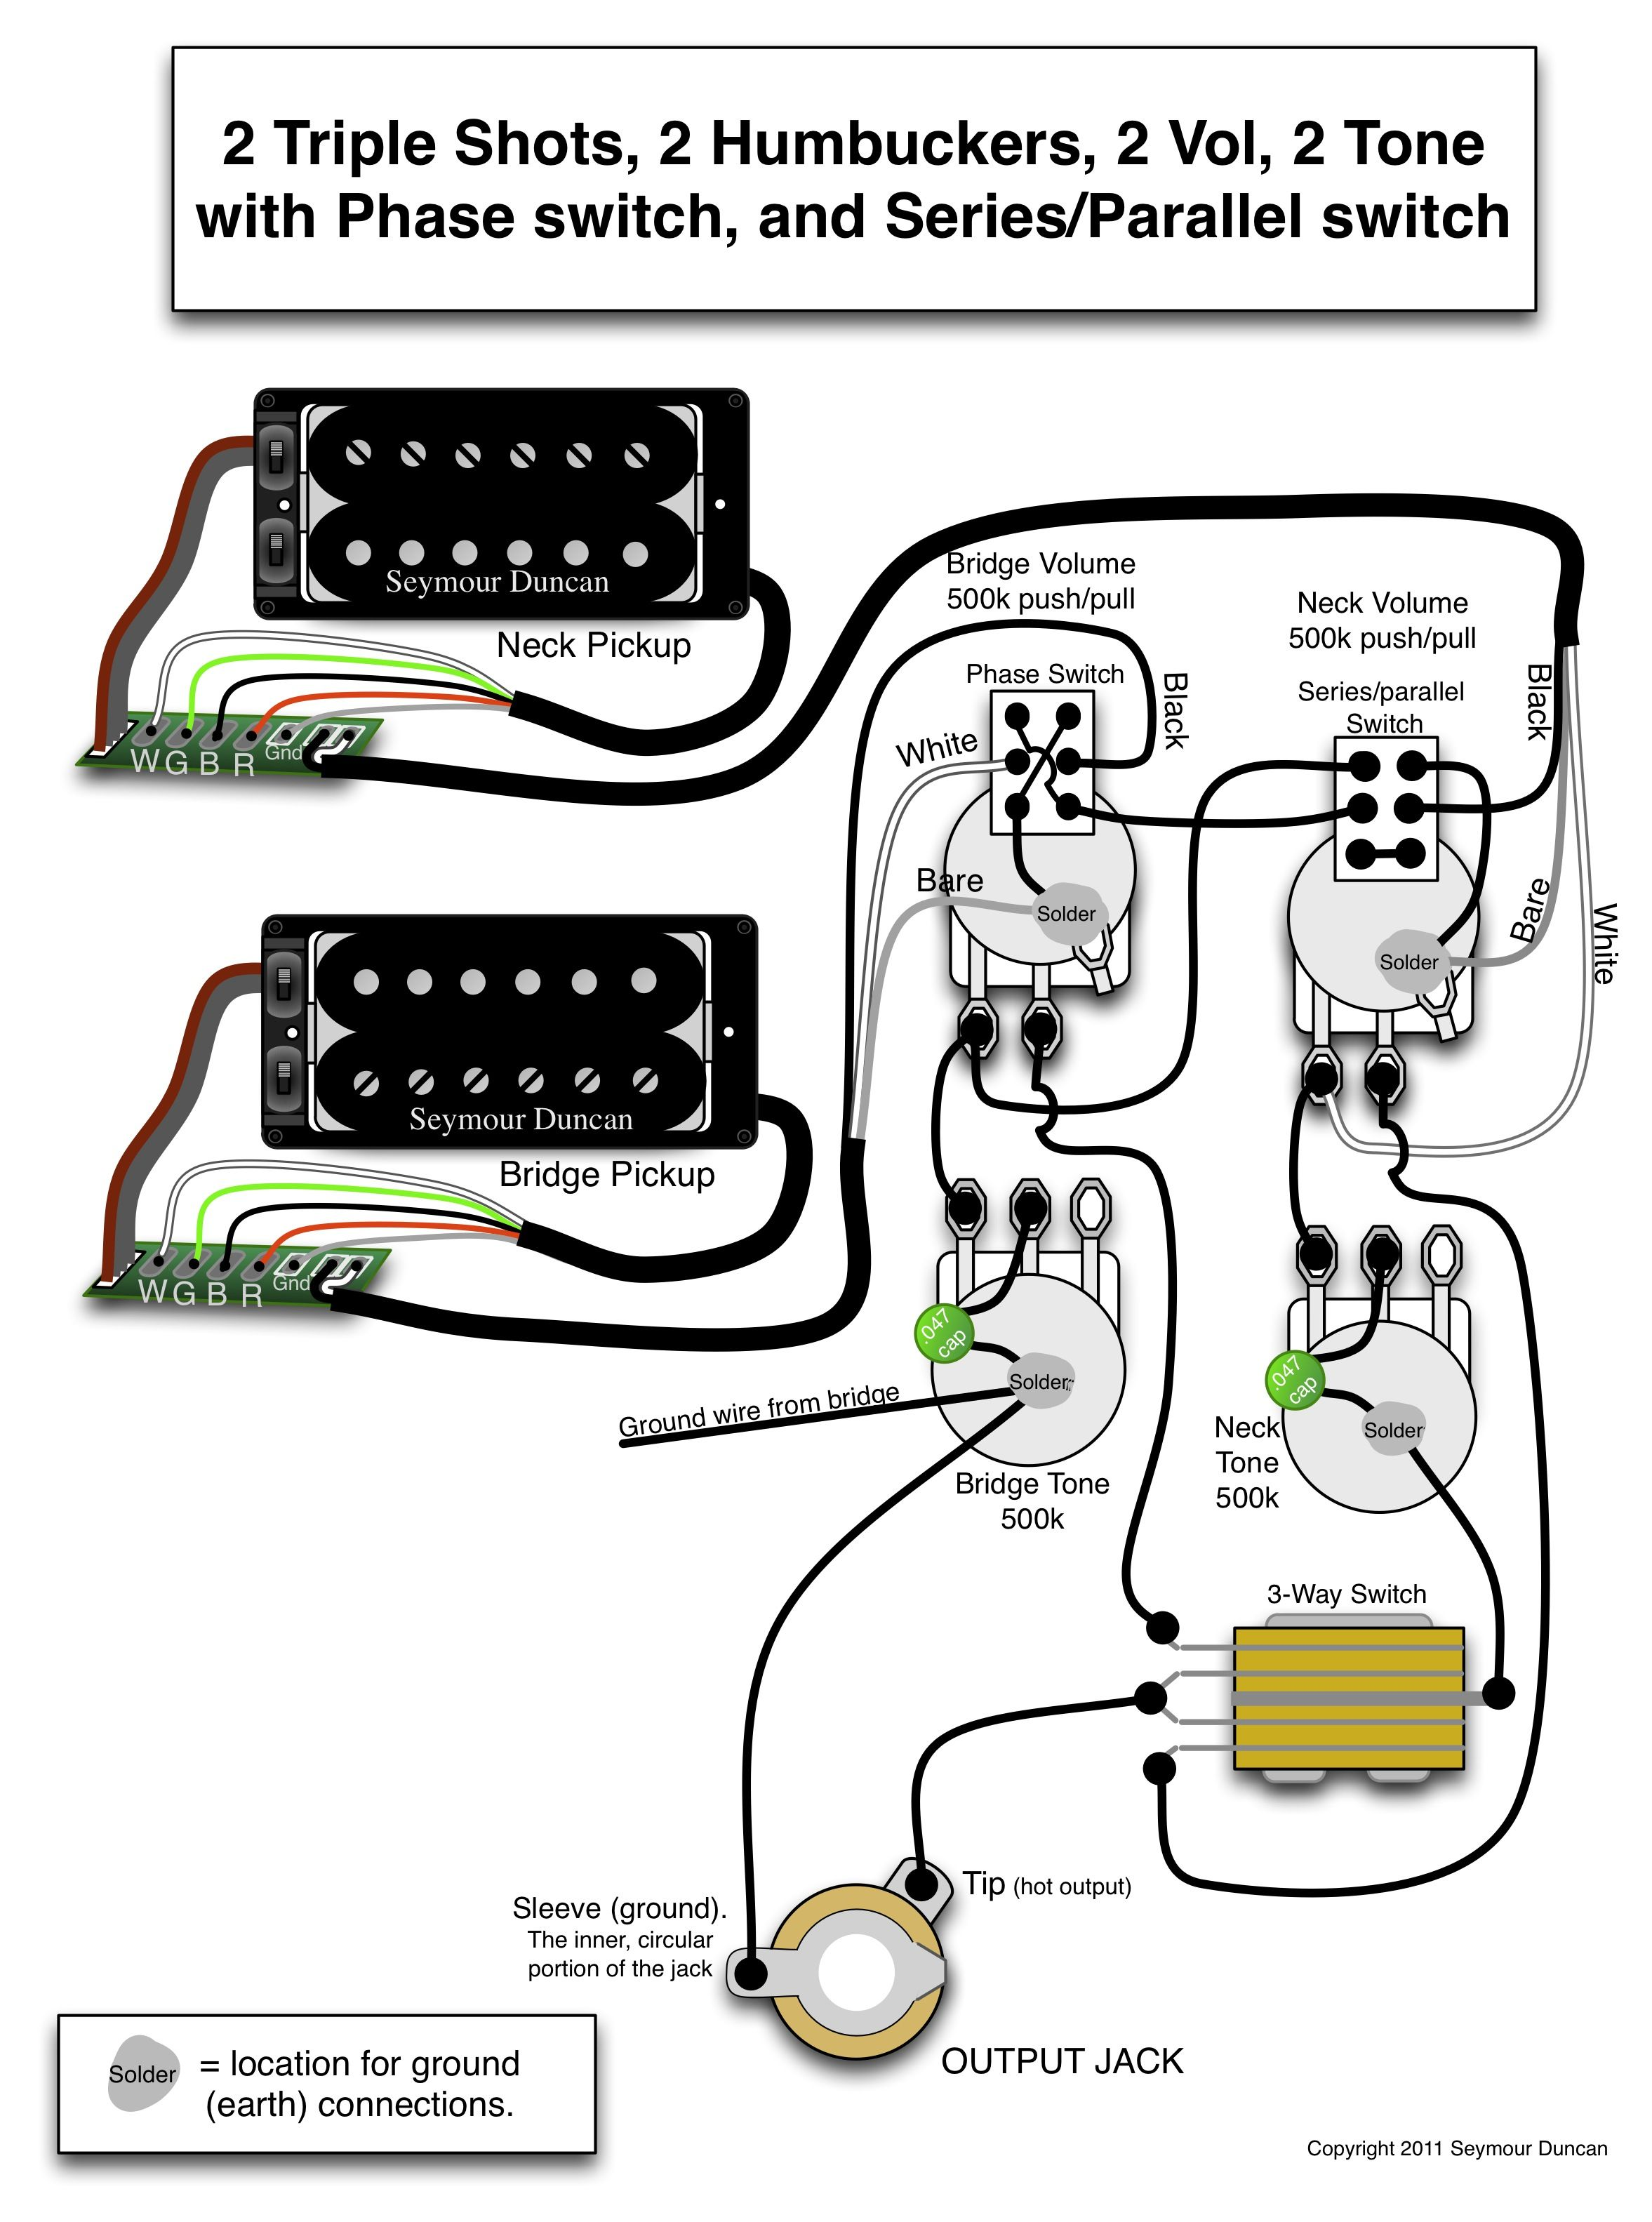 seymour duncan wiring diagram 2 triple shots 2 humbuckers 2 vol 2 [ 2354 x 3166 Pixel ]